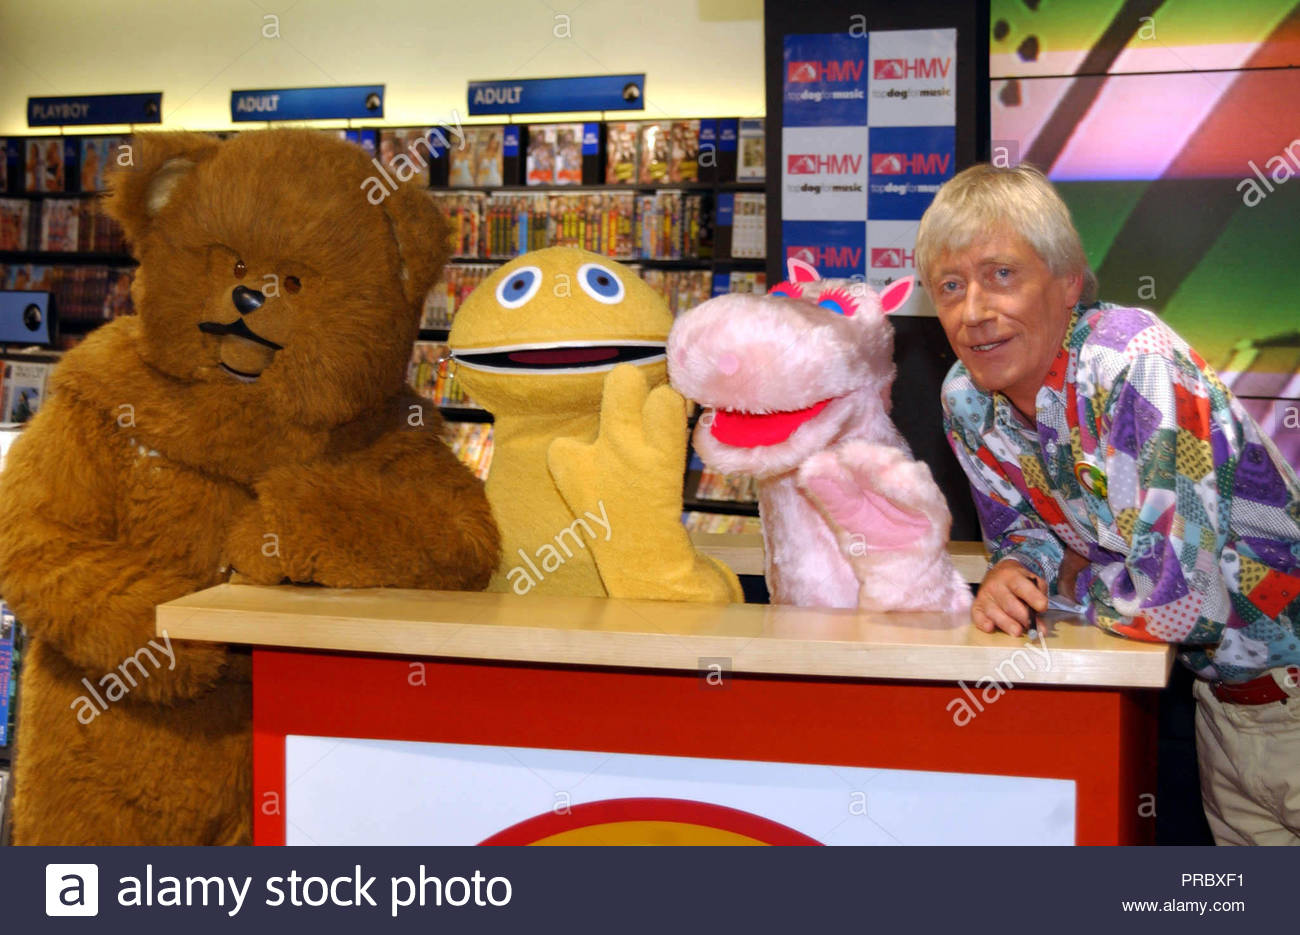 PA file photo dated 22/10/01 of (left to right) Bungle, Zippy, George and Geoffrey Hayes. The actor and TV presenter has died at the age of 76. Stock Photo